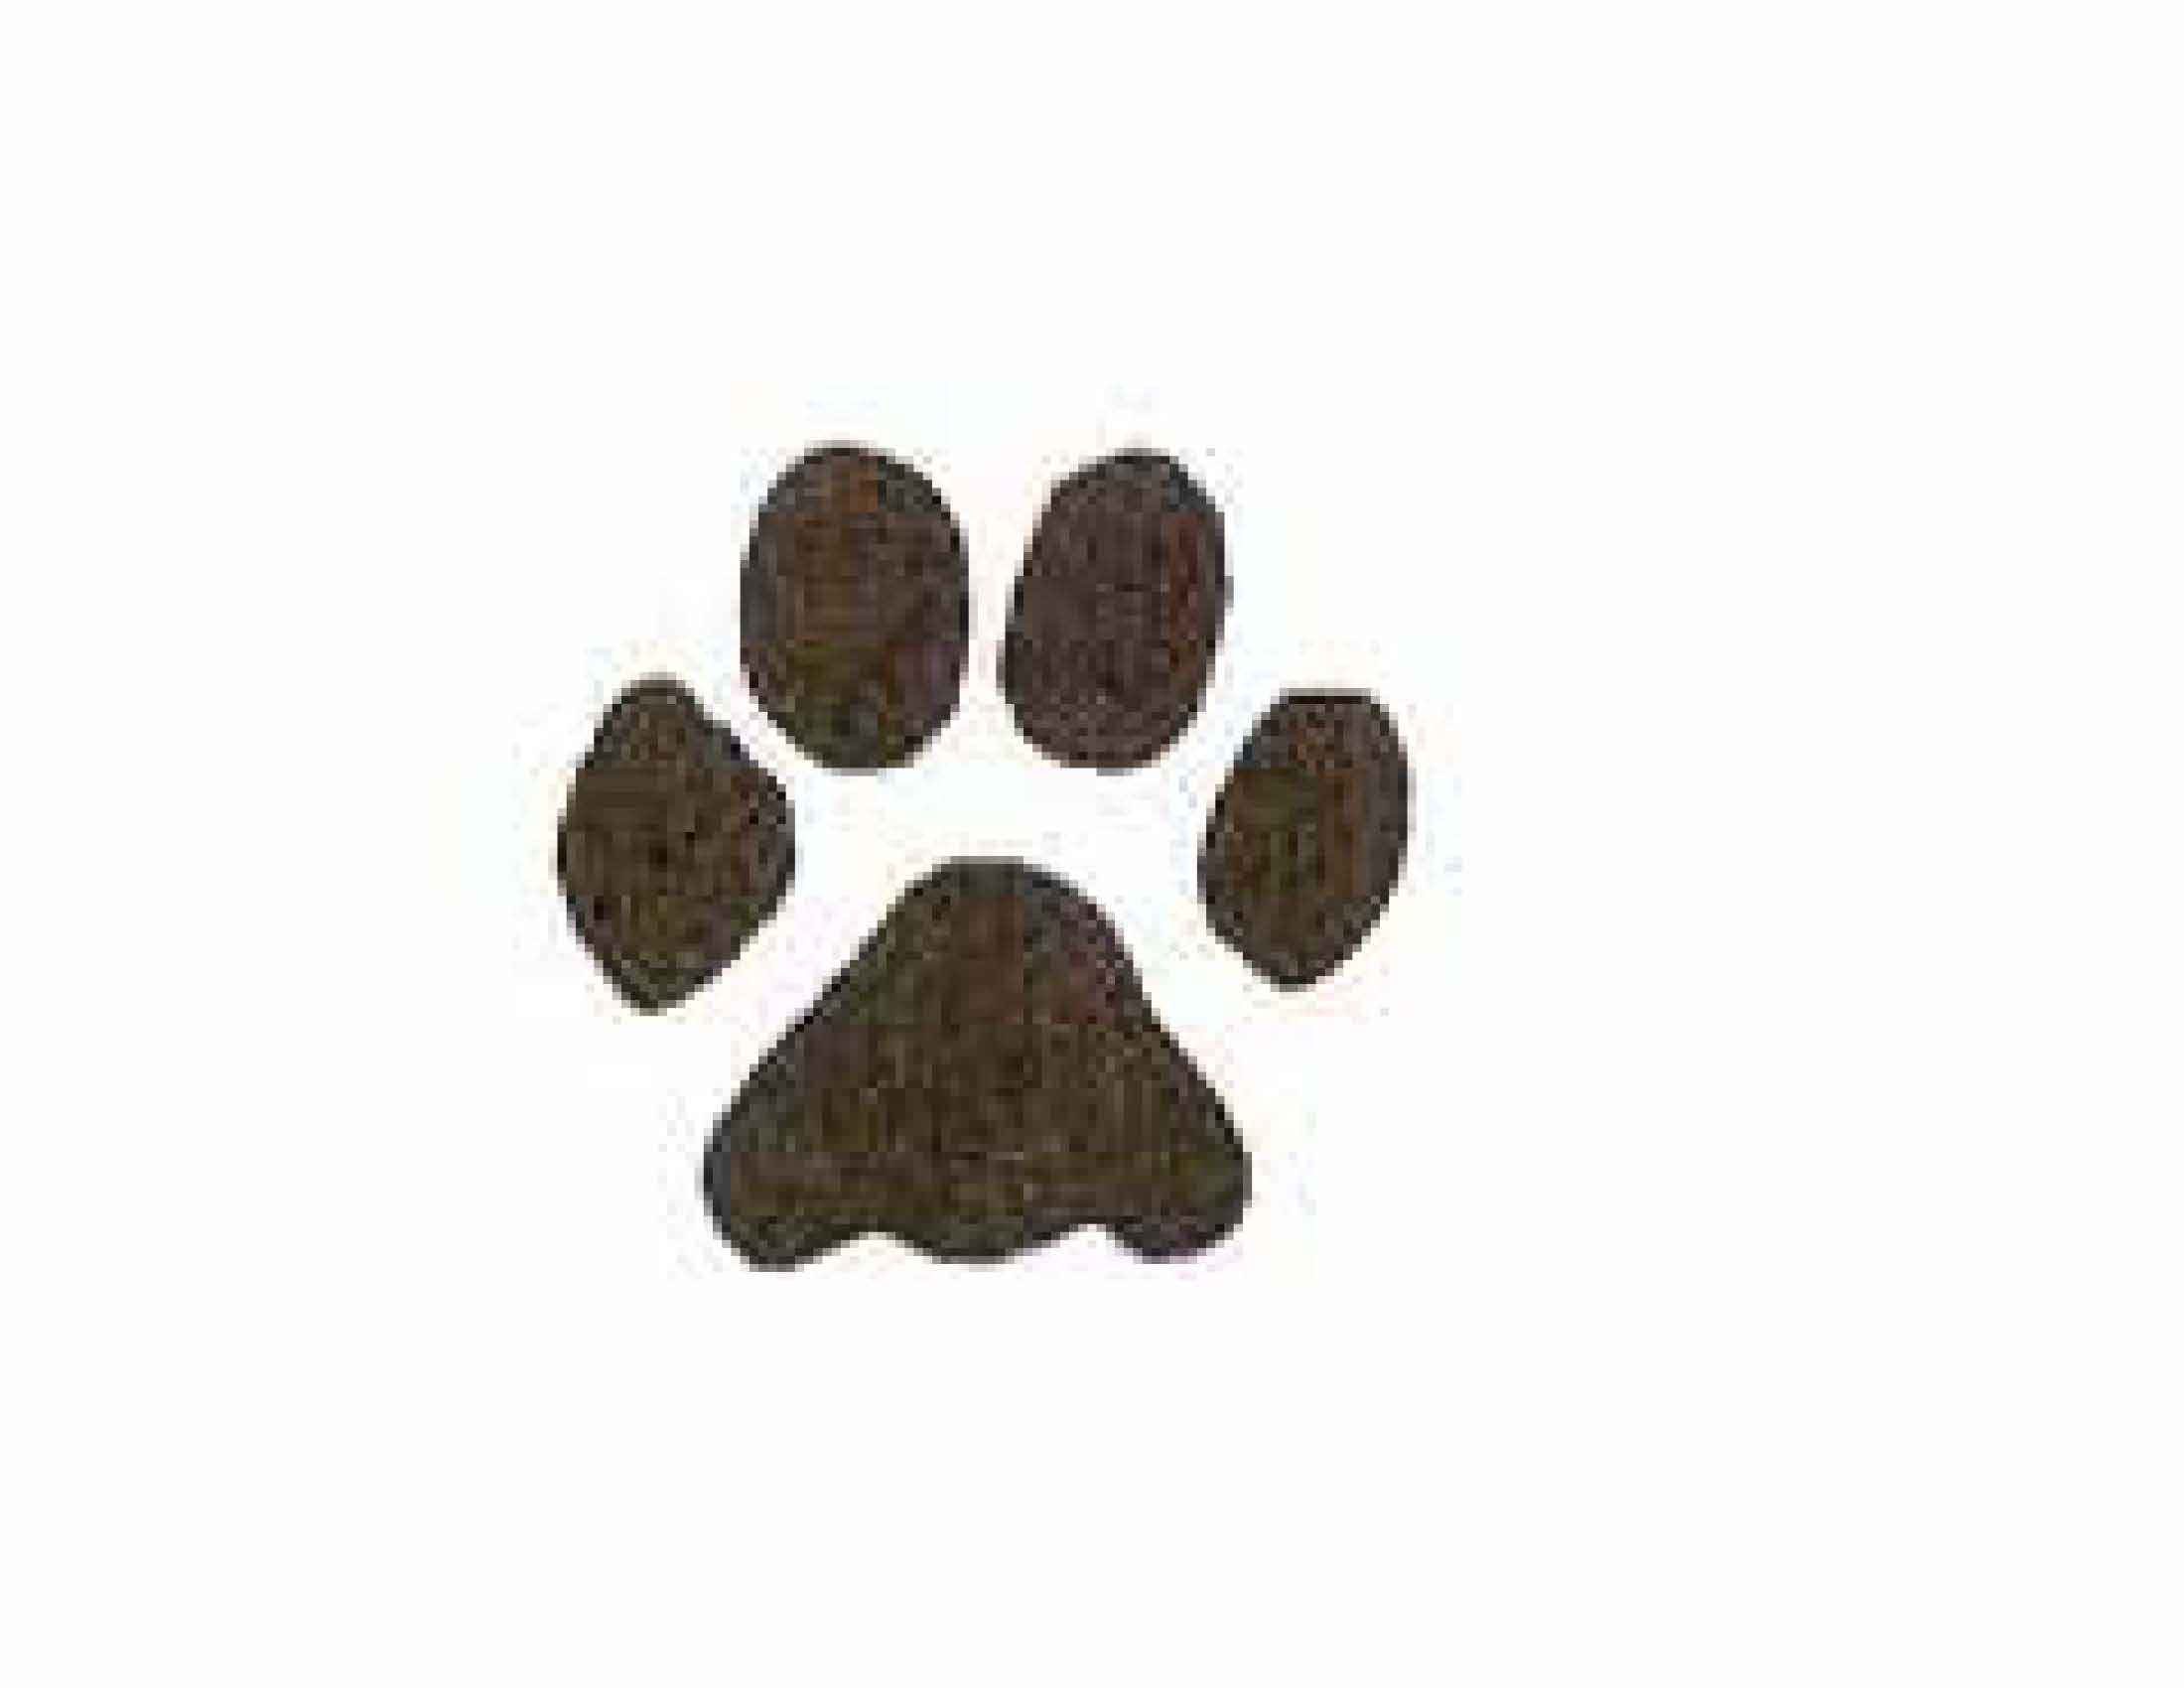 Pawprint clipart small dog. Free paw print download